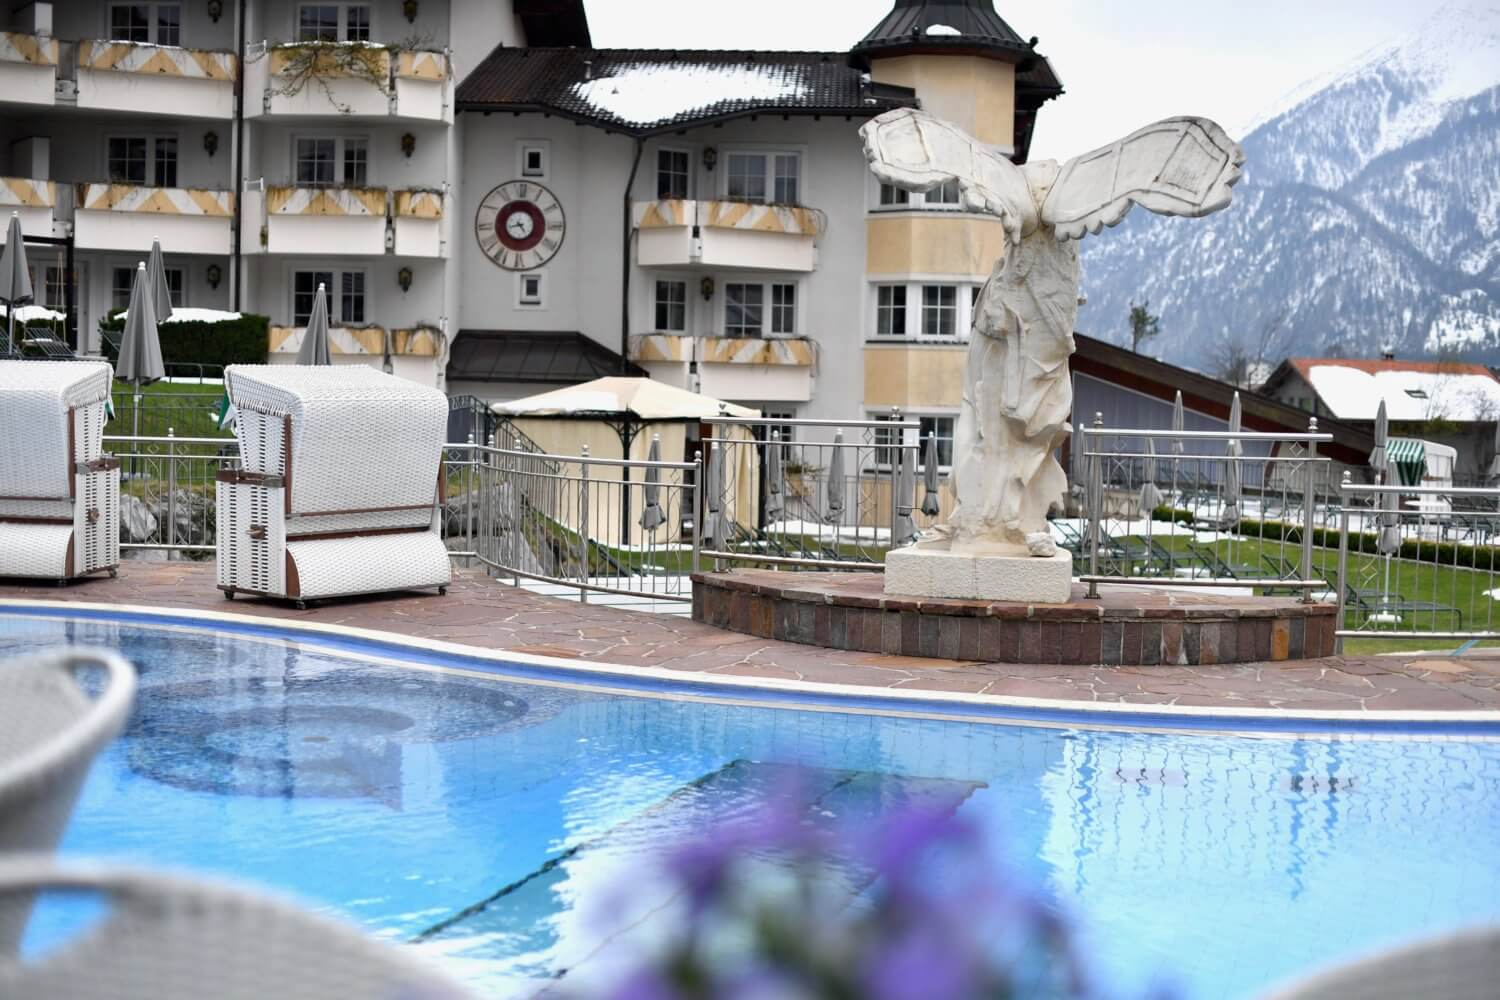 A weekend of Wellness & Adventure - Post Hotel Achenkirch